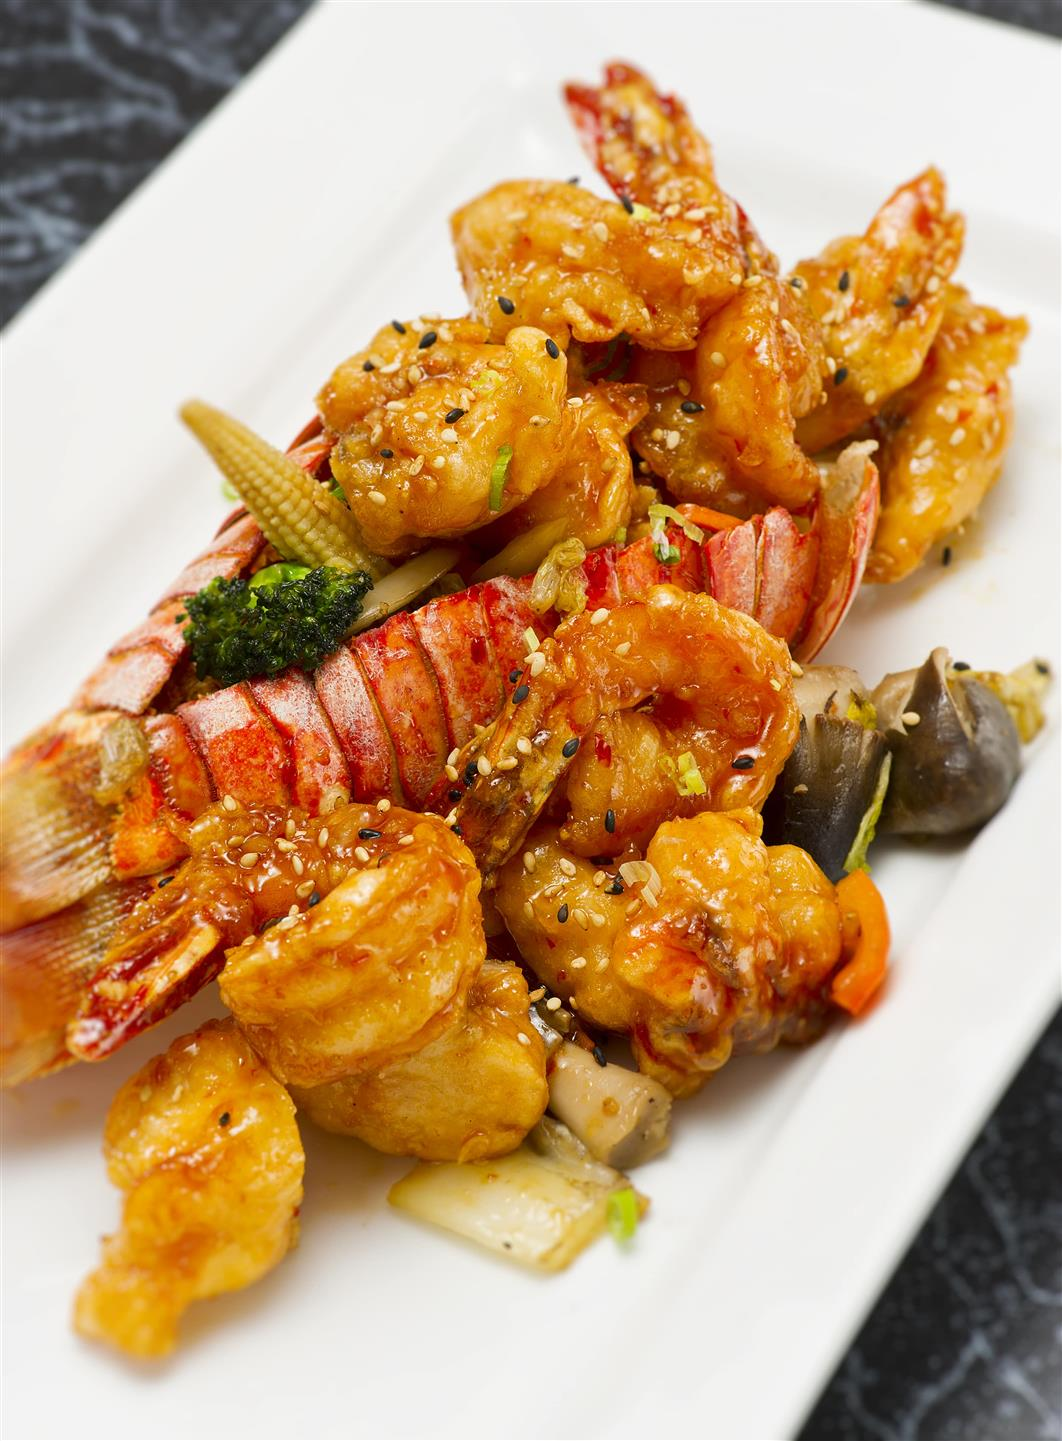 bangbang shrimp and lobster stuffed into a lobster tail serced with veggies